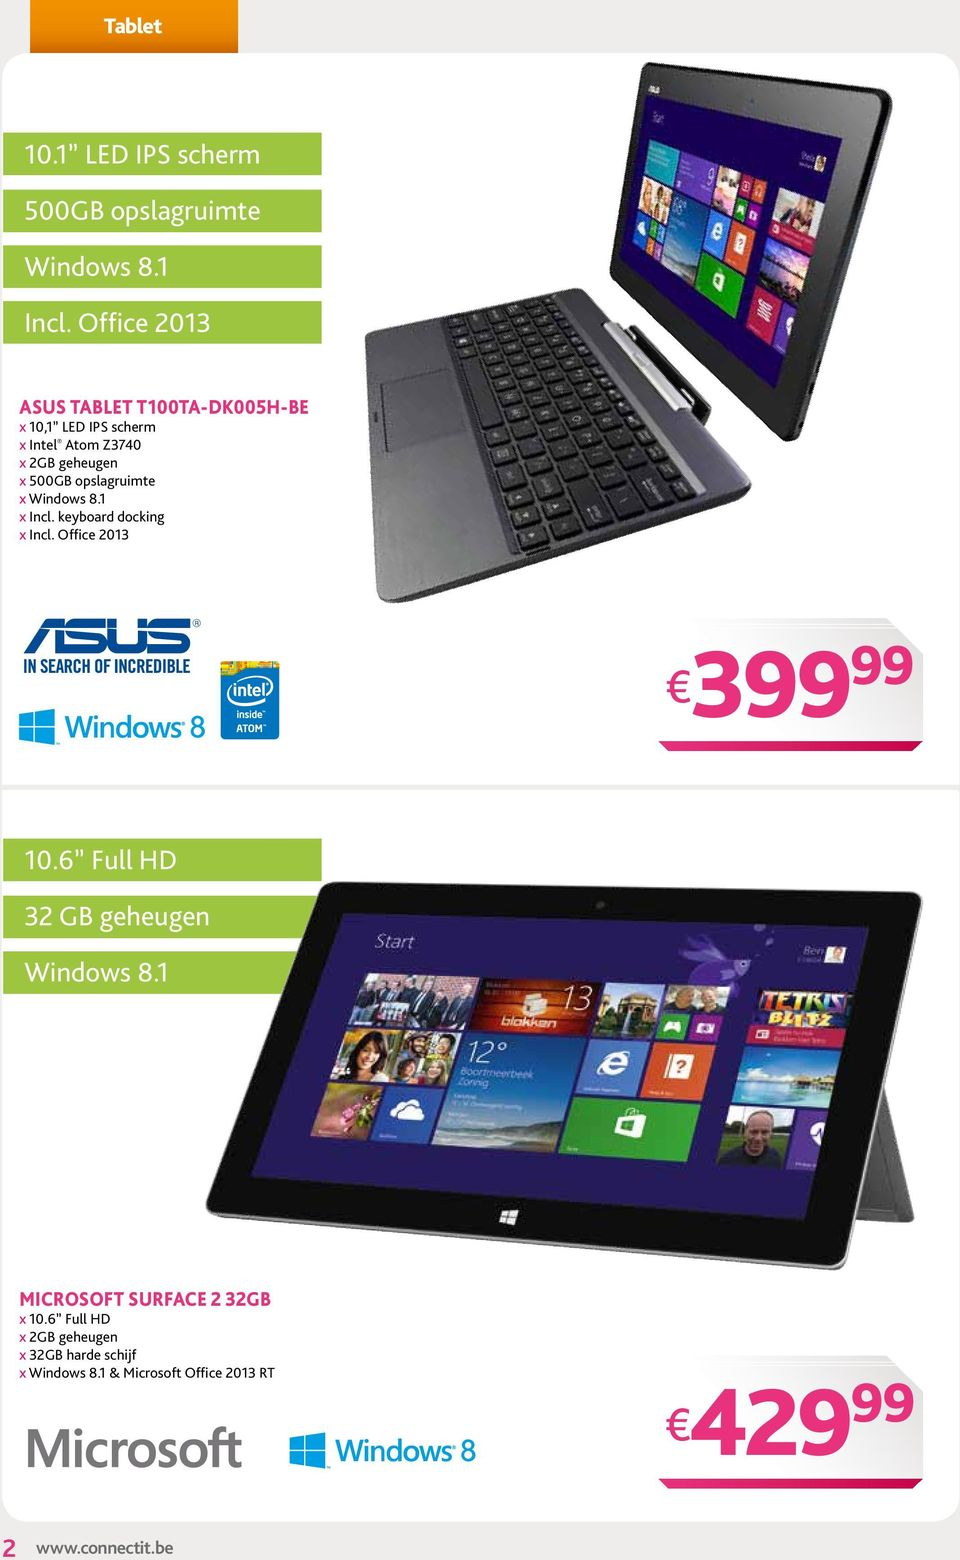 opslagruimte x Windows 8.1 x Incl. keyboard docking x Incl. Office 2013 3 10.